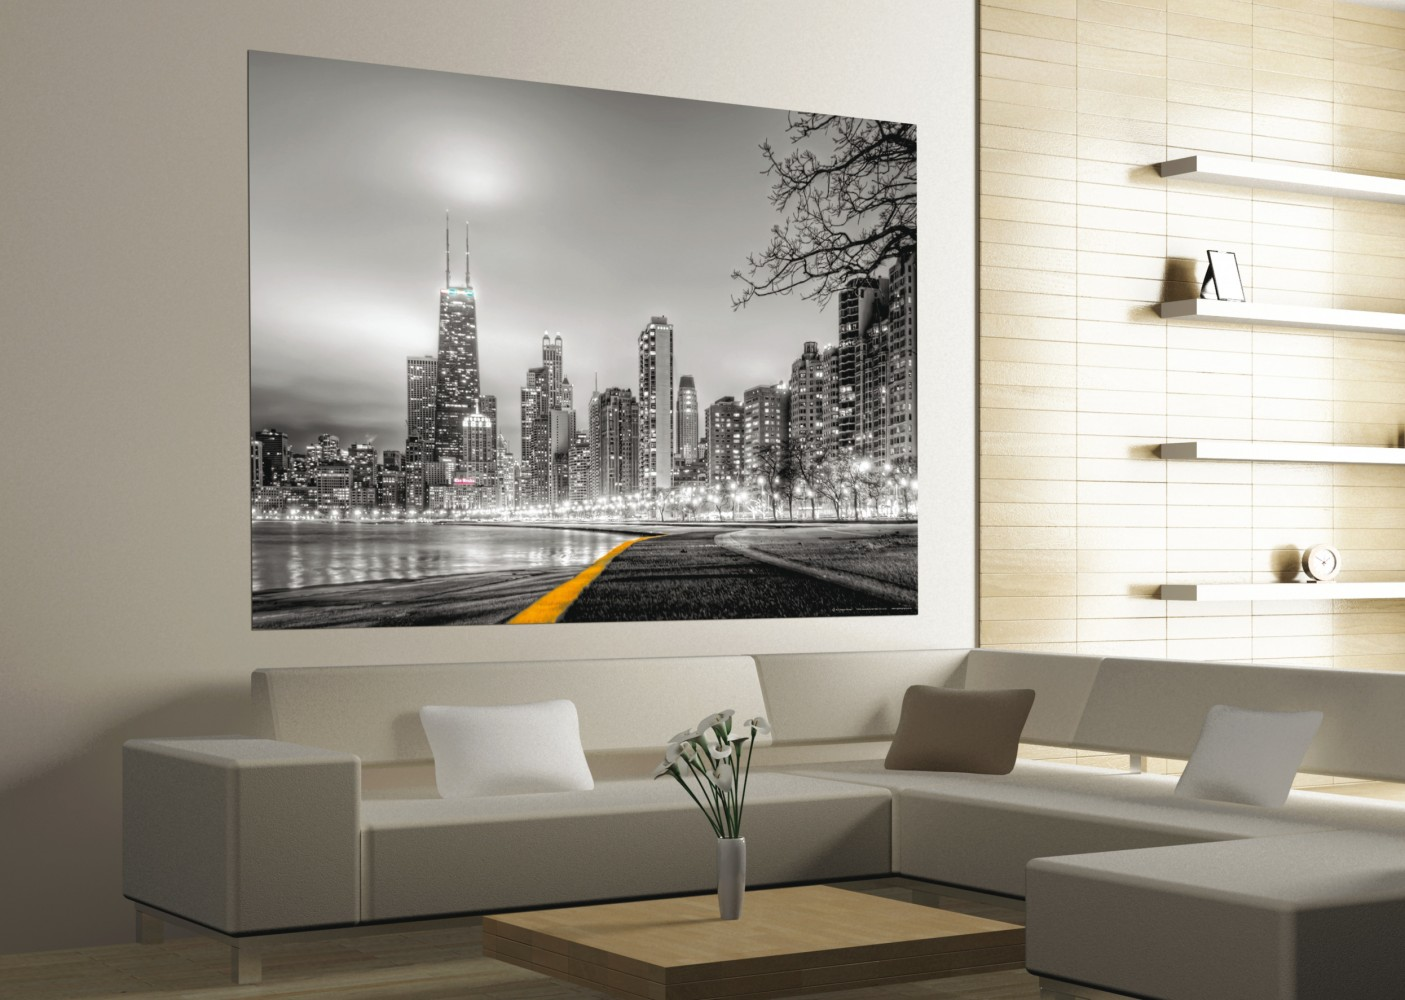 Xxl poster wall mural wallpaper new york skyline nyc photo for Poster mural xxl fleurs